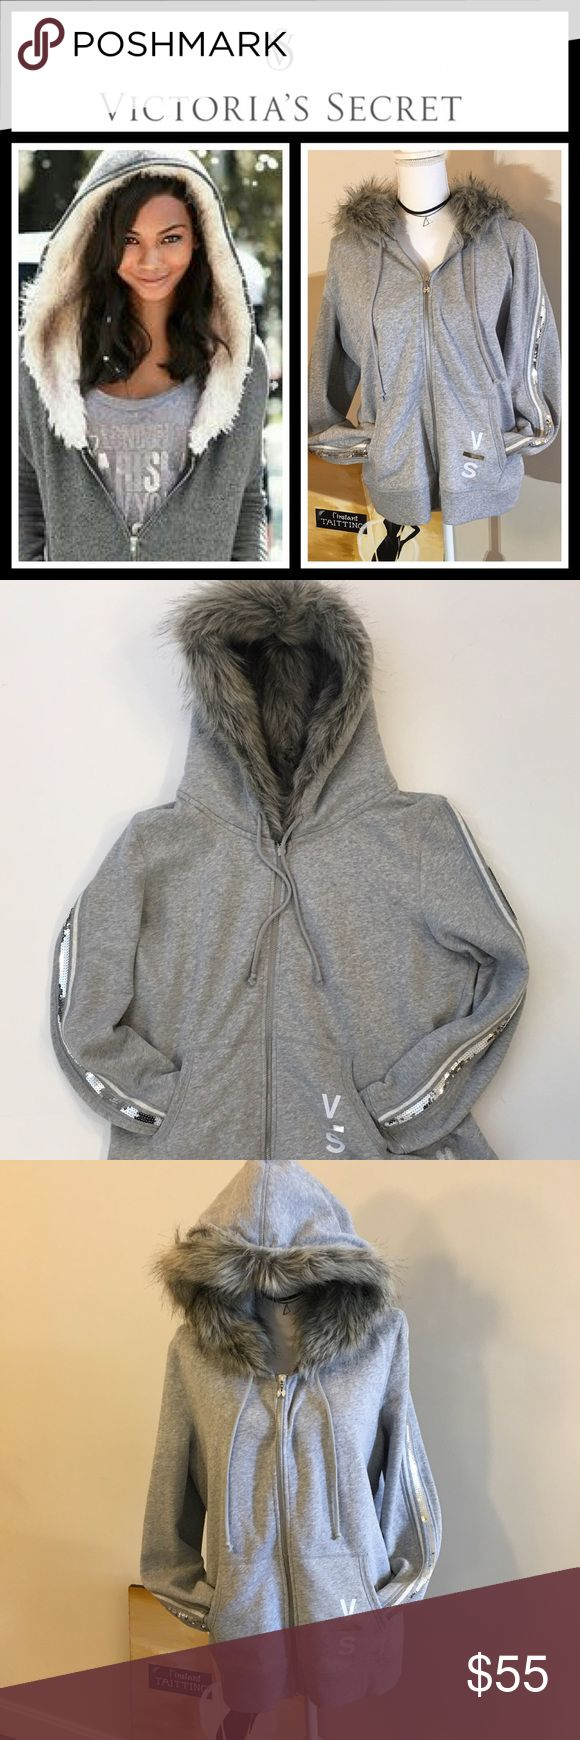 VS Grey faux fur hoodie NWOT New without tags's perfect condition sequin sleeve furry hood everything about the sweatshirt is amazing super warm and comfortable size is extra-large and fits true to size - slightly different than the stock photo on the front so see pics for actual item PINK Victoria's Secret Tops Sweatshirts & Hoodies